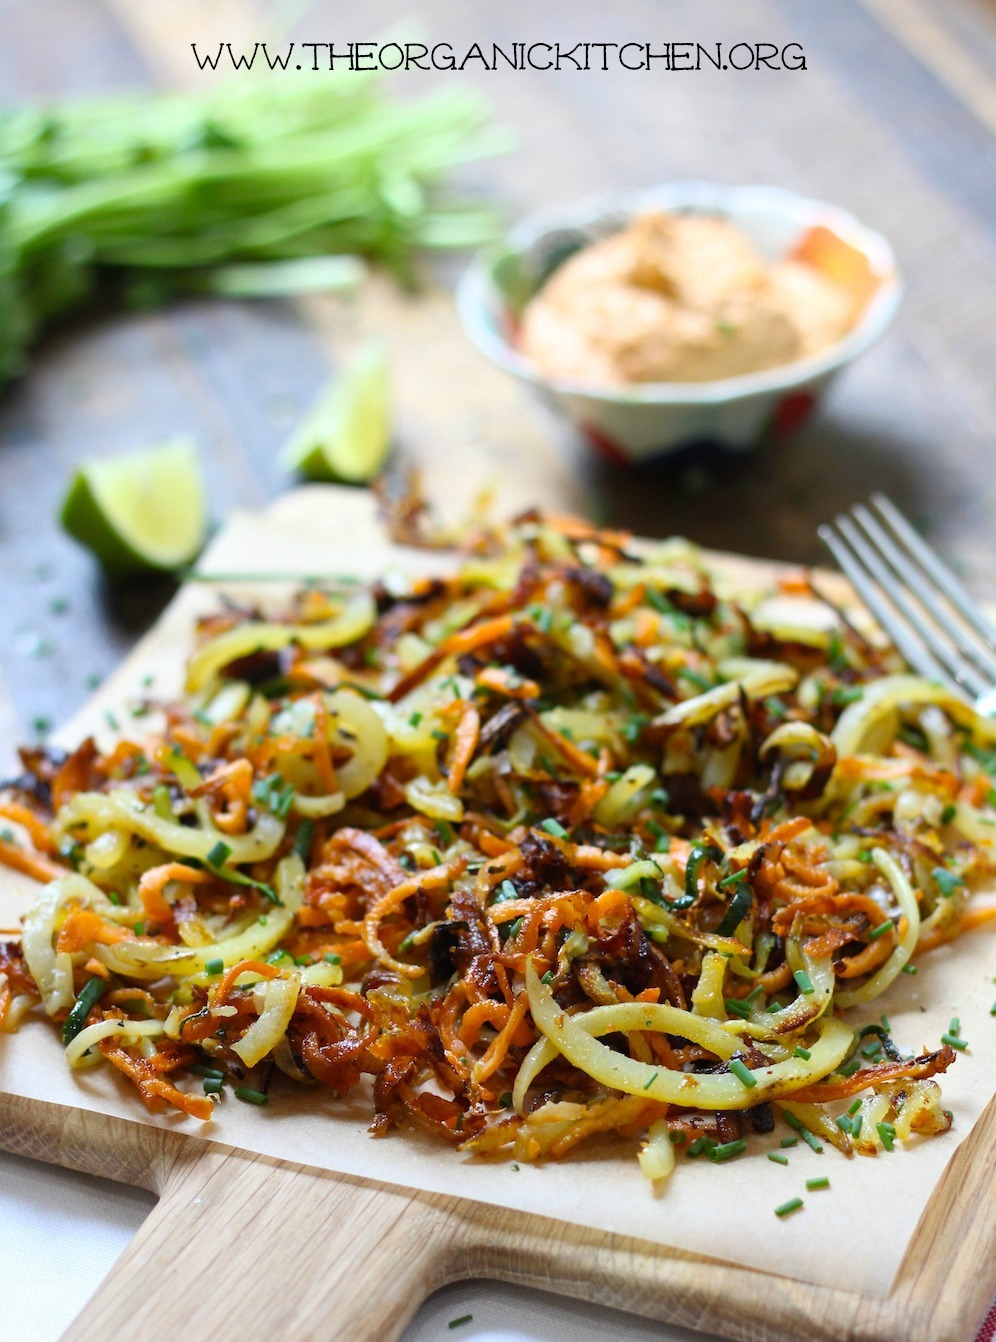 Crispy Spiralized Vegetables with Chipotle Lime Cashew Dipping Sauce! Paleo/Whole 30